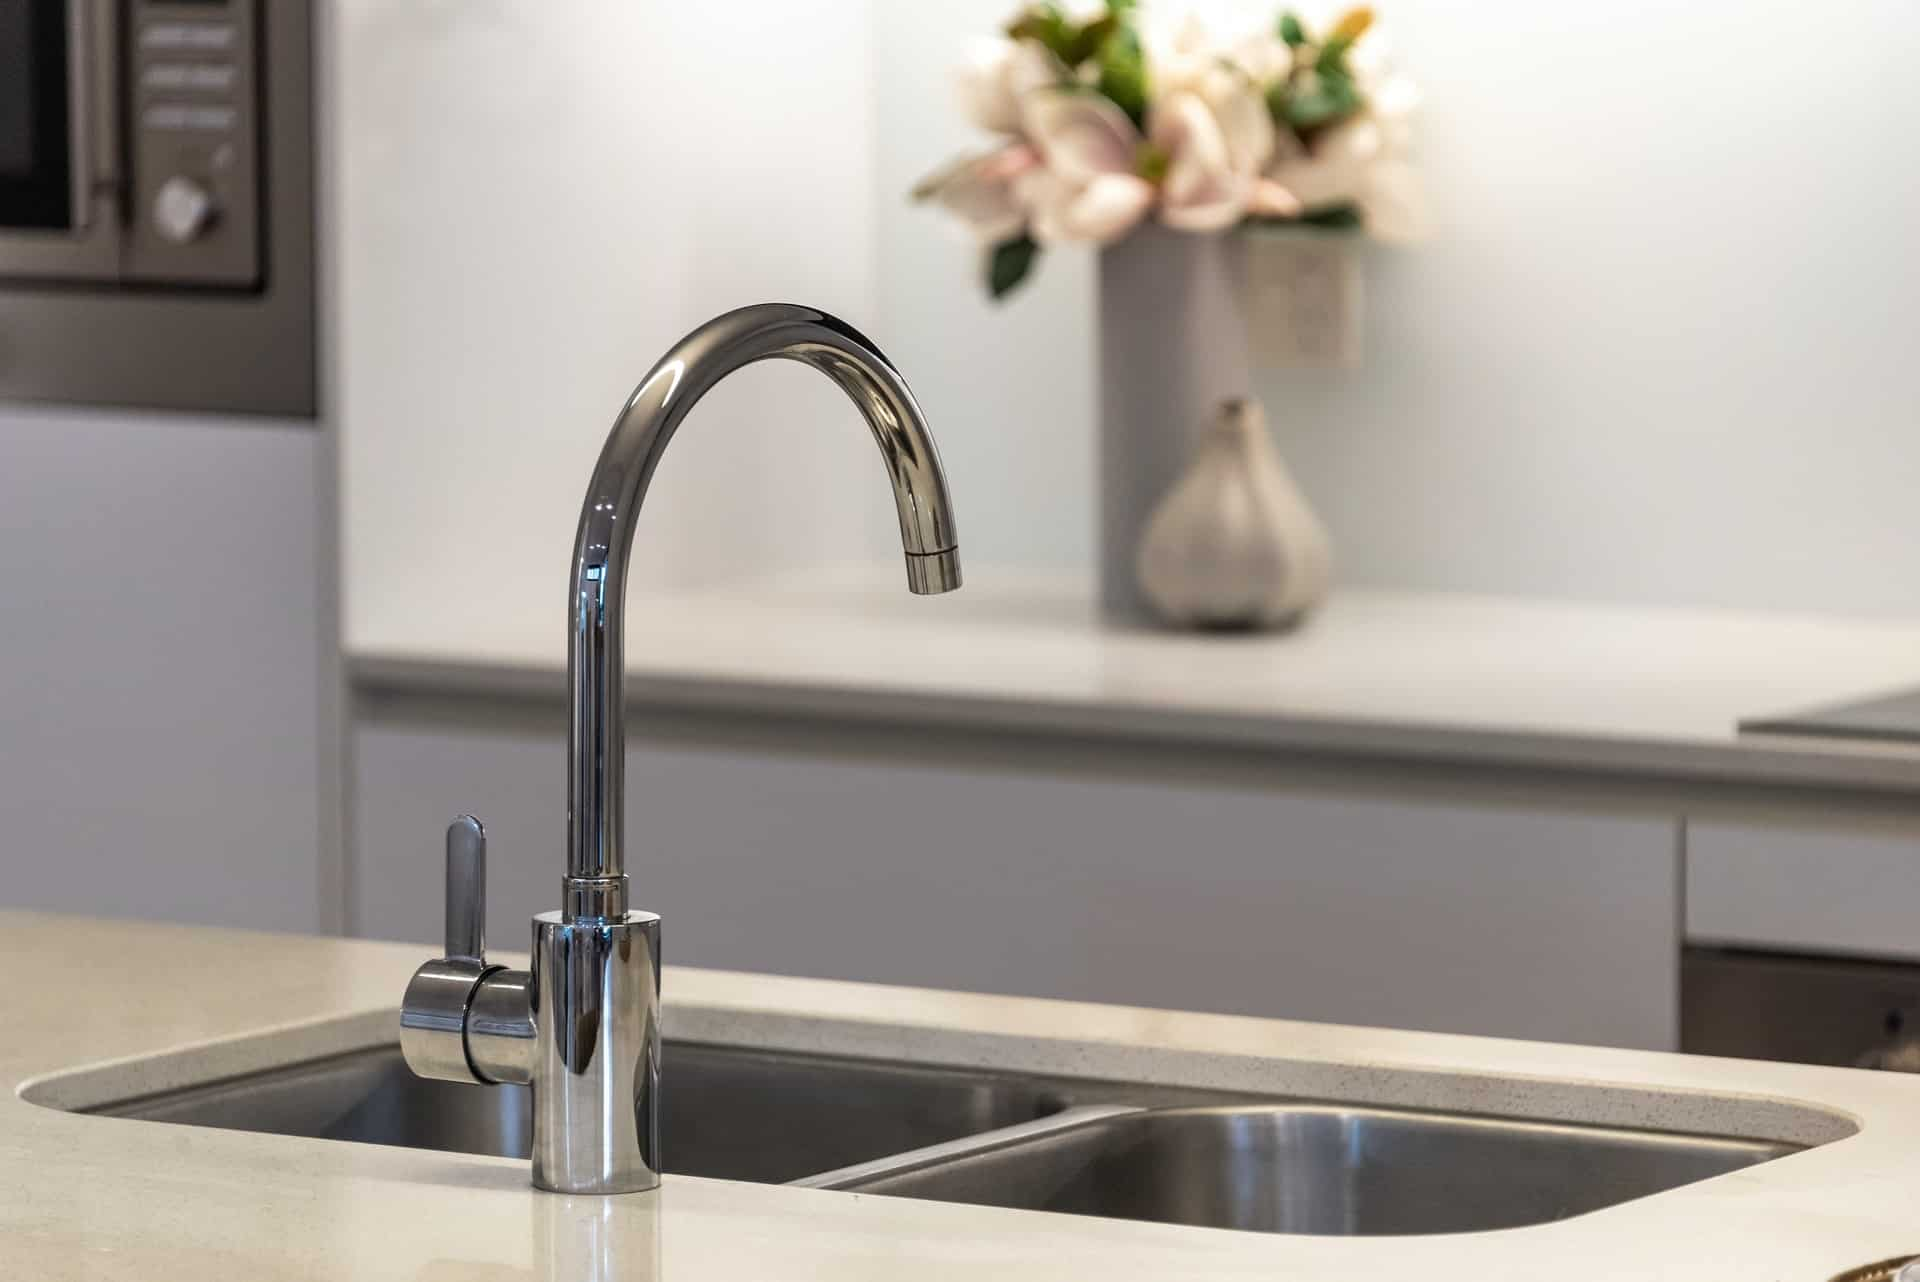 Pfister faucet in a modern white kitchen